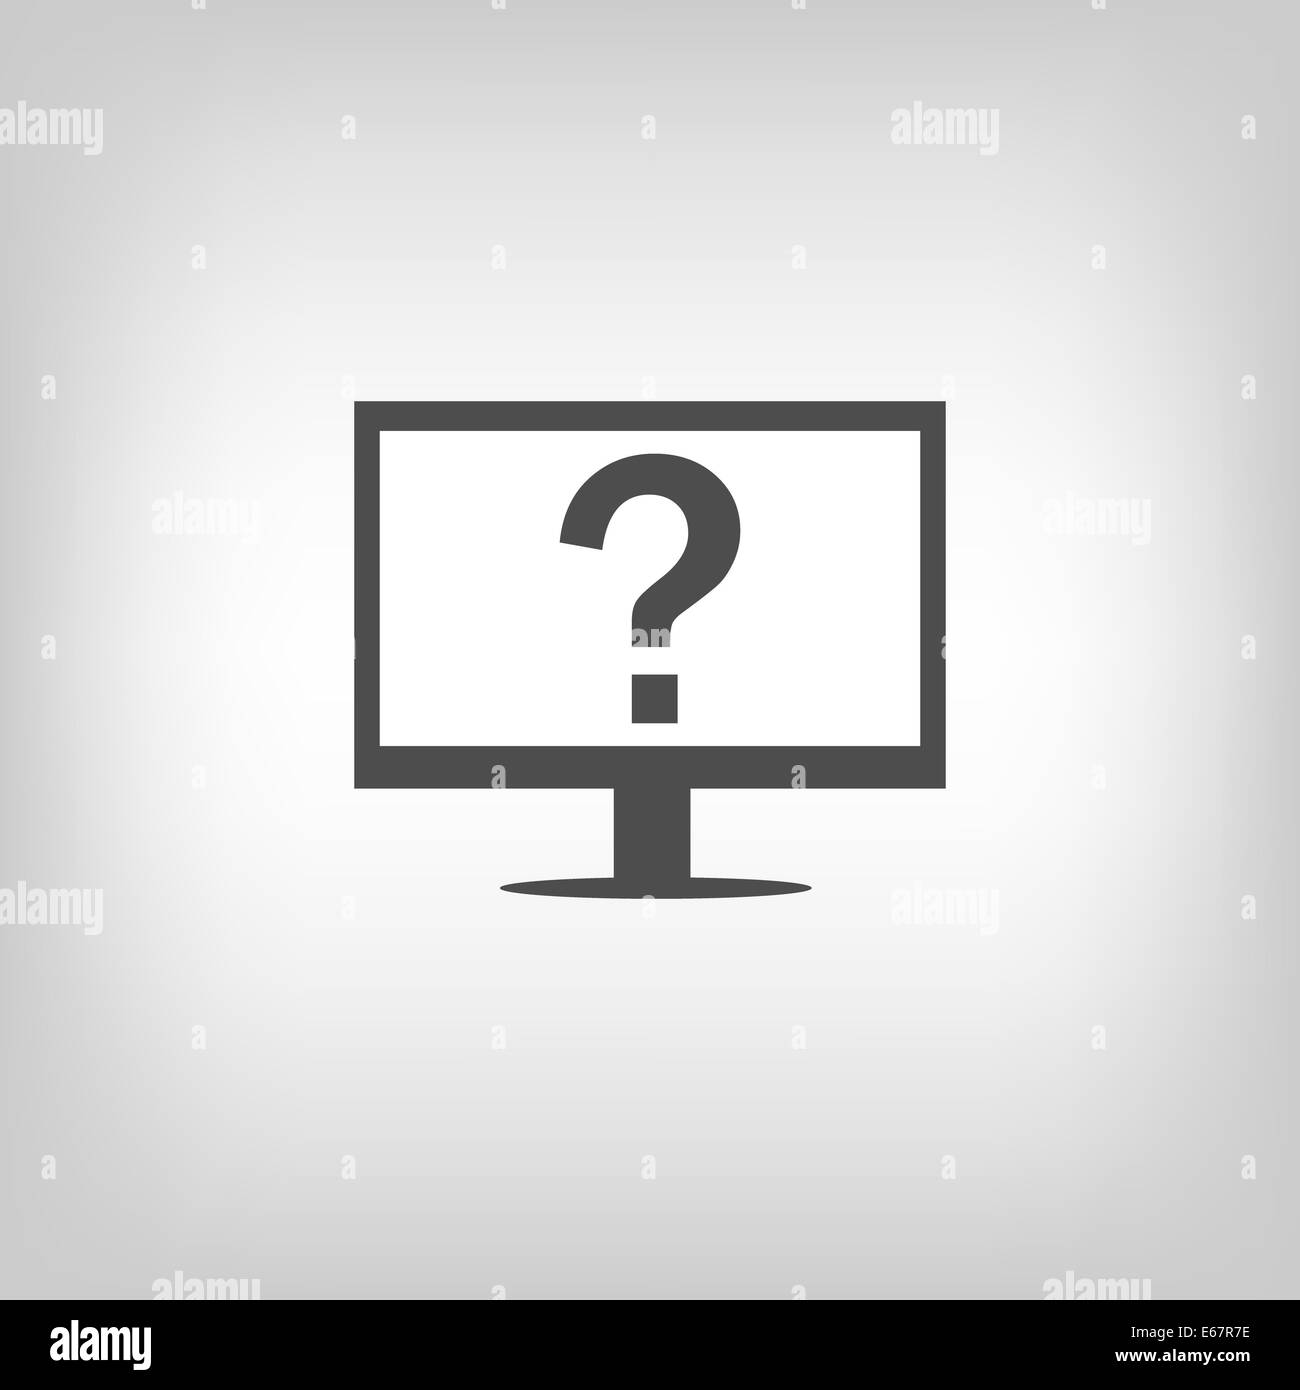 Assistance sign - Stock Image